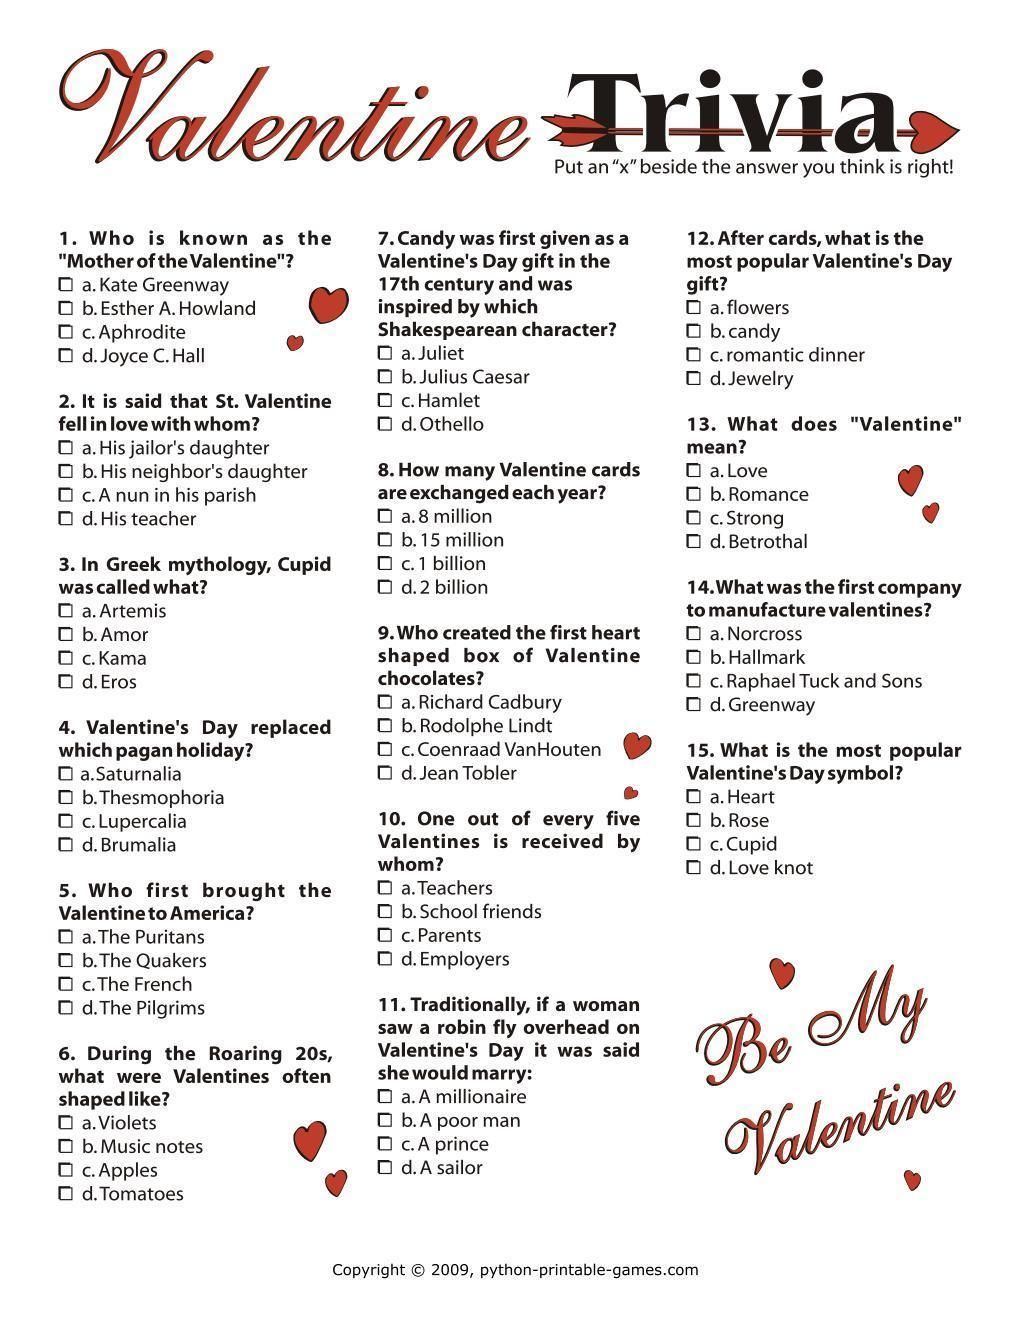 Print Games Now Offers The Best Quality Printable Games For Valentines Day Choose Download An In 2020 Valentines Day Words Valentines Day Trivia Valentine Party Game